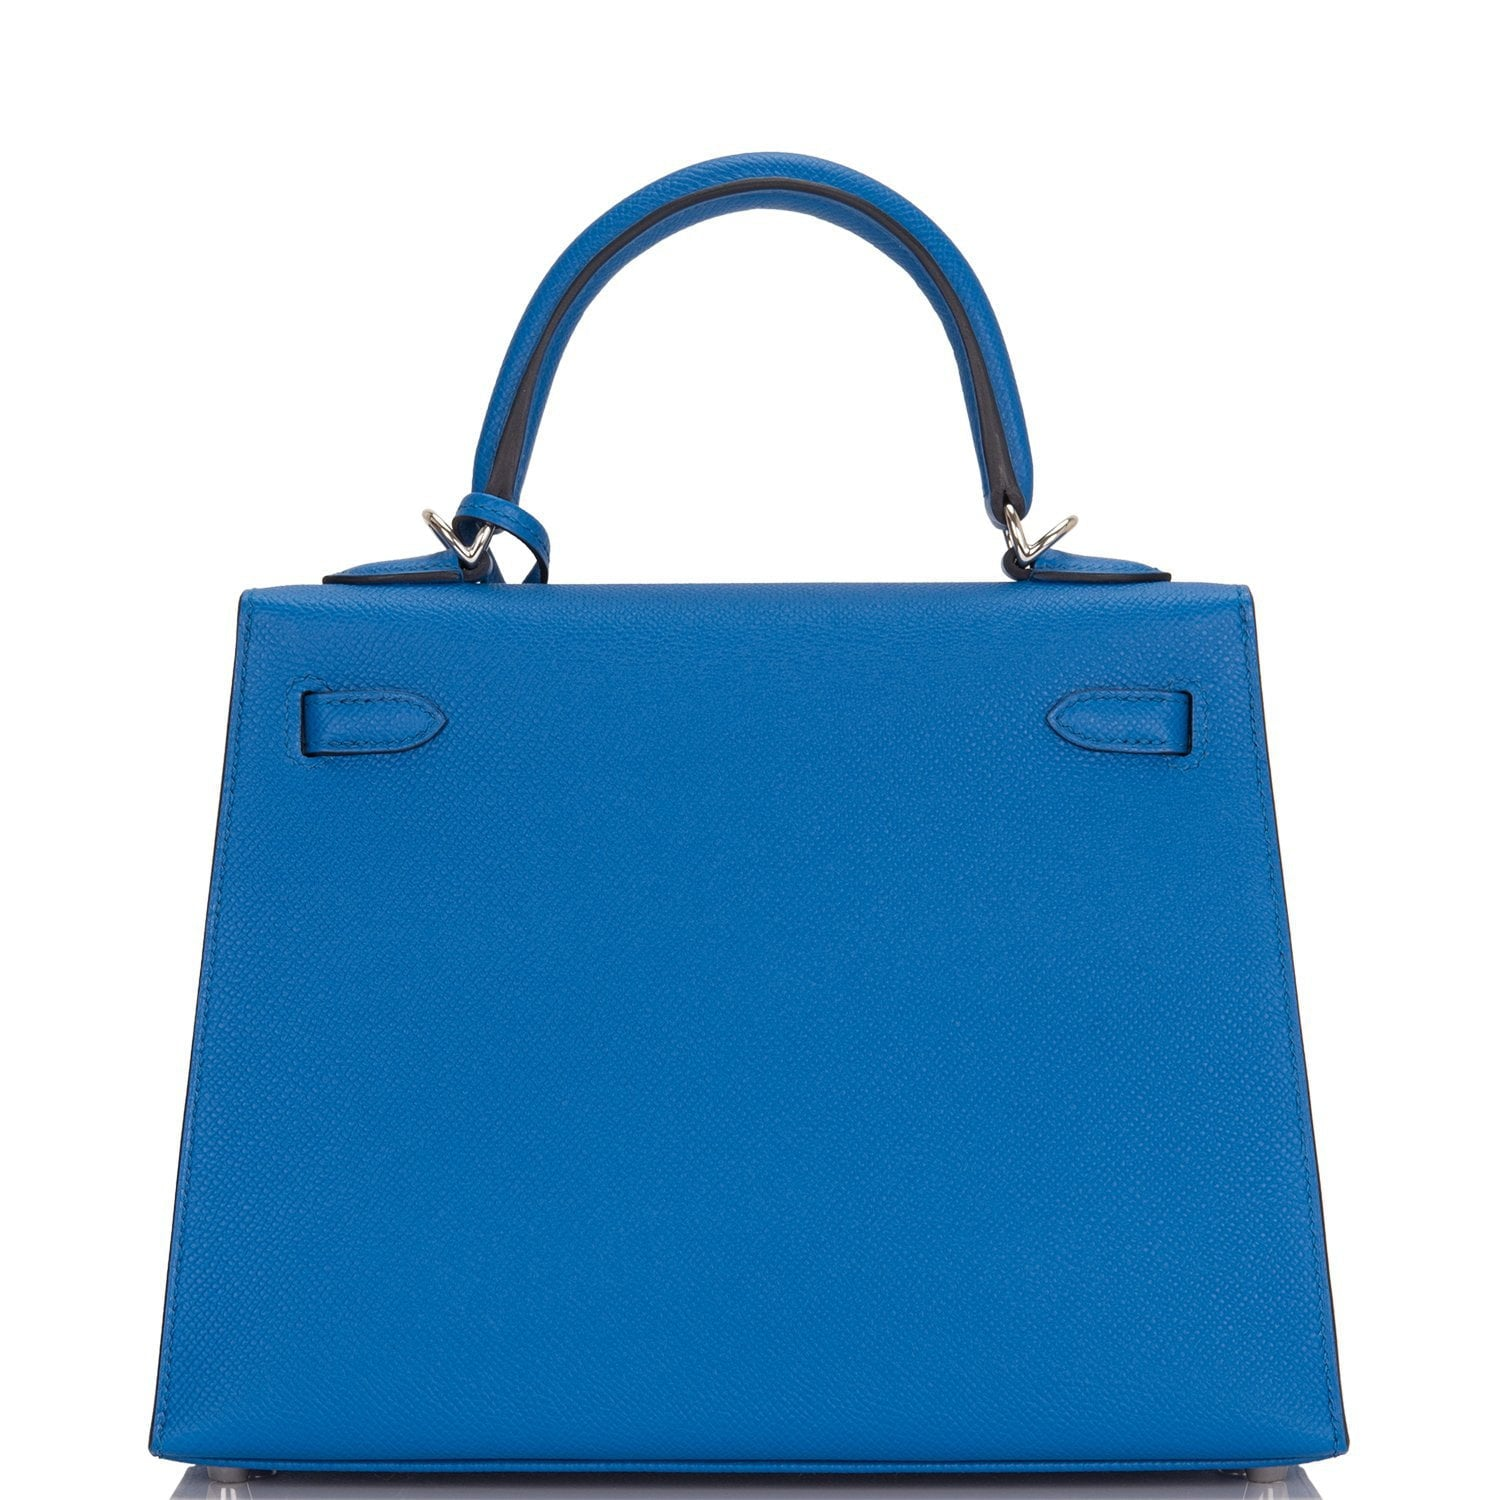 Hermes Blue Zellige Epsom Sellier Kelly 25cm Palladium Hardware